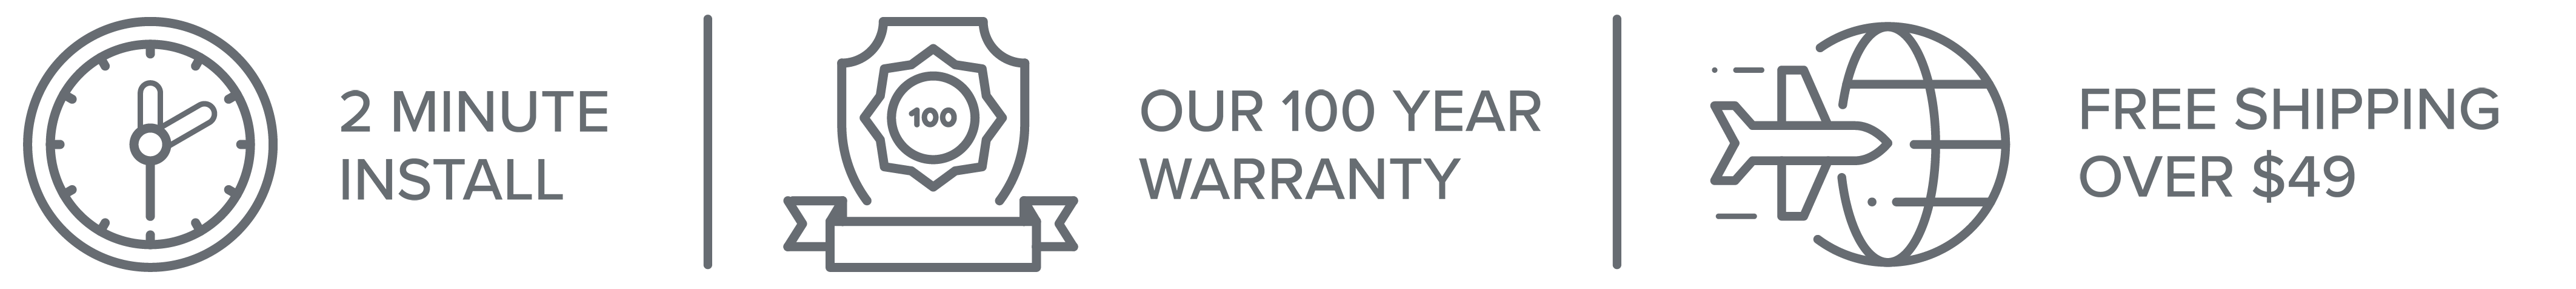 2 Minute Install, Our 100 Year Warranty and Free Shipping on orders over $49